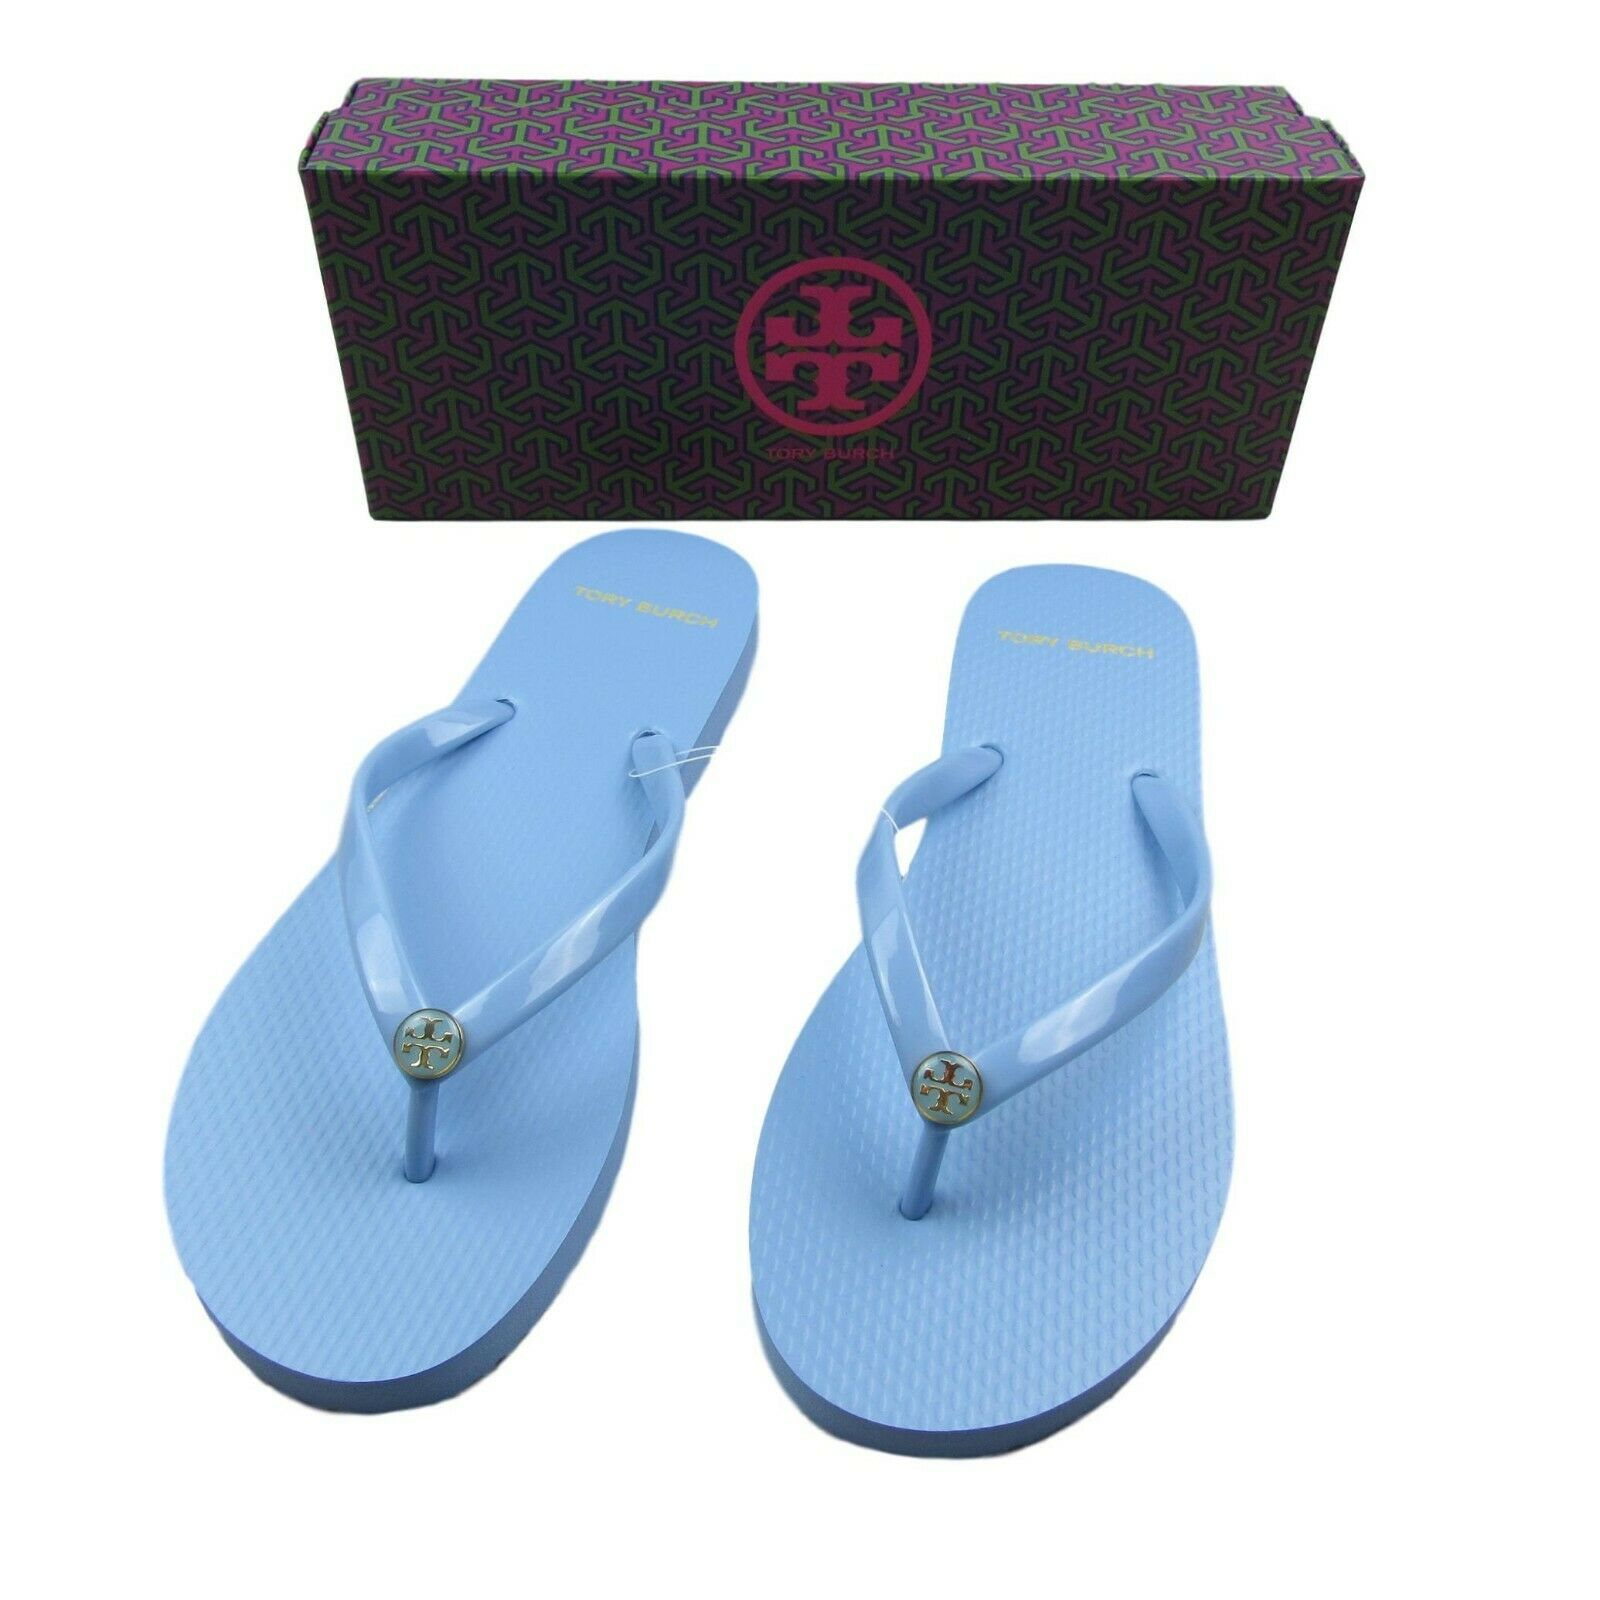 c39c1a554 Tory Burch Flip Flops Size 9 Solid Thin Light Chambray Blue New